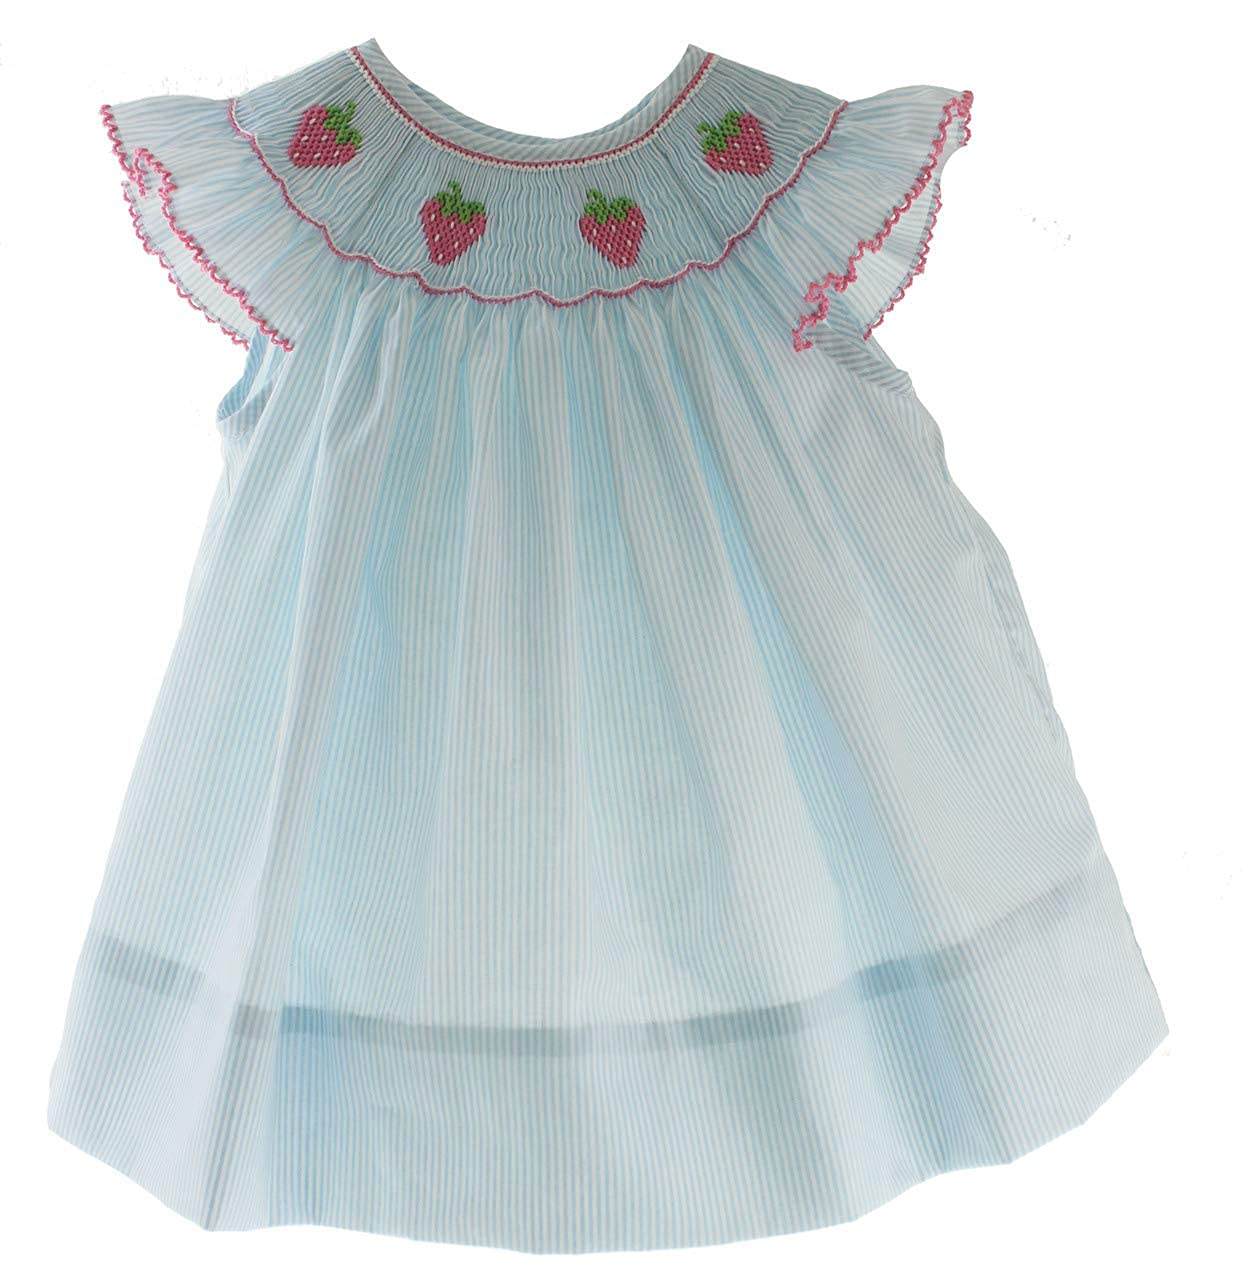 Petit Bebe Girls Smocked Dress Strawberry Smocking Blue Angel Bishop